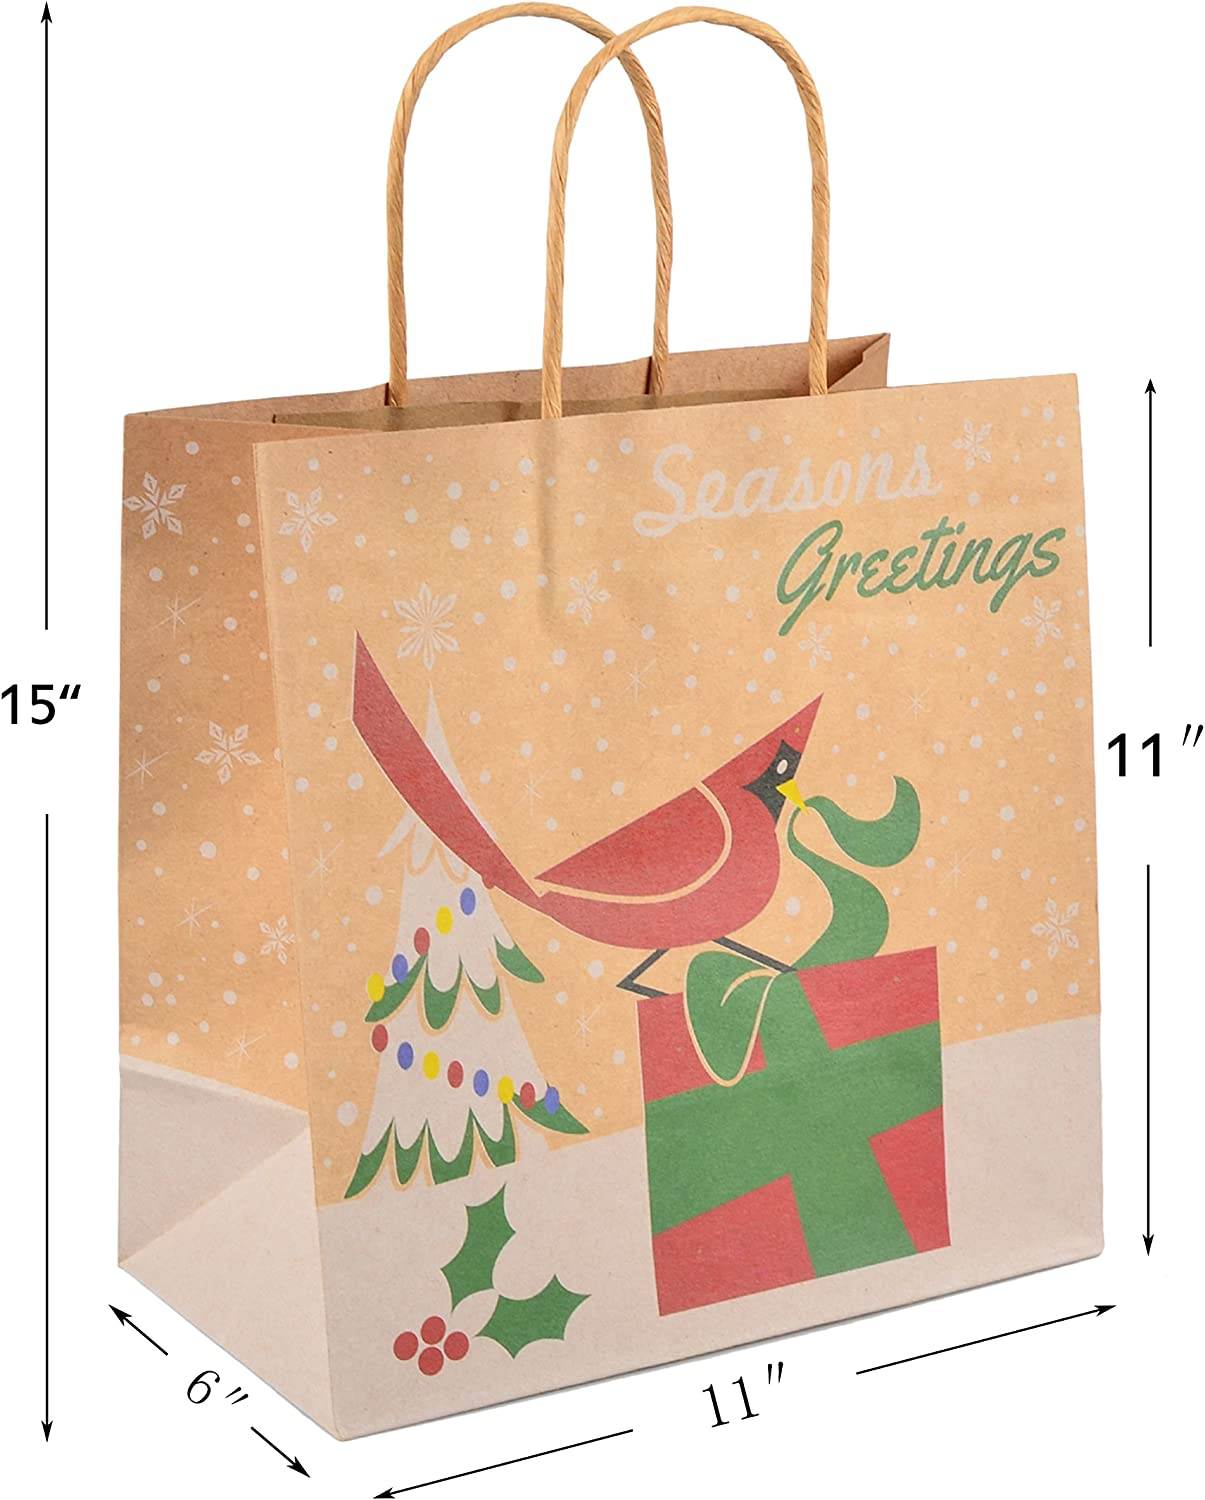 JOYIN 24 Christmas Kraft Gift Bags with Assorted Christmas Prints for Kraft Bags School Classrooms and Party Favors by Joiedomi Christmas Goody Bags Xmas Gift Bags